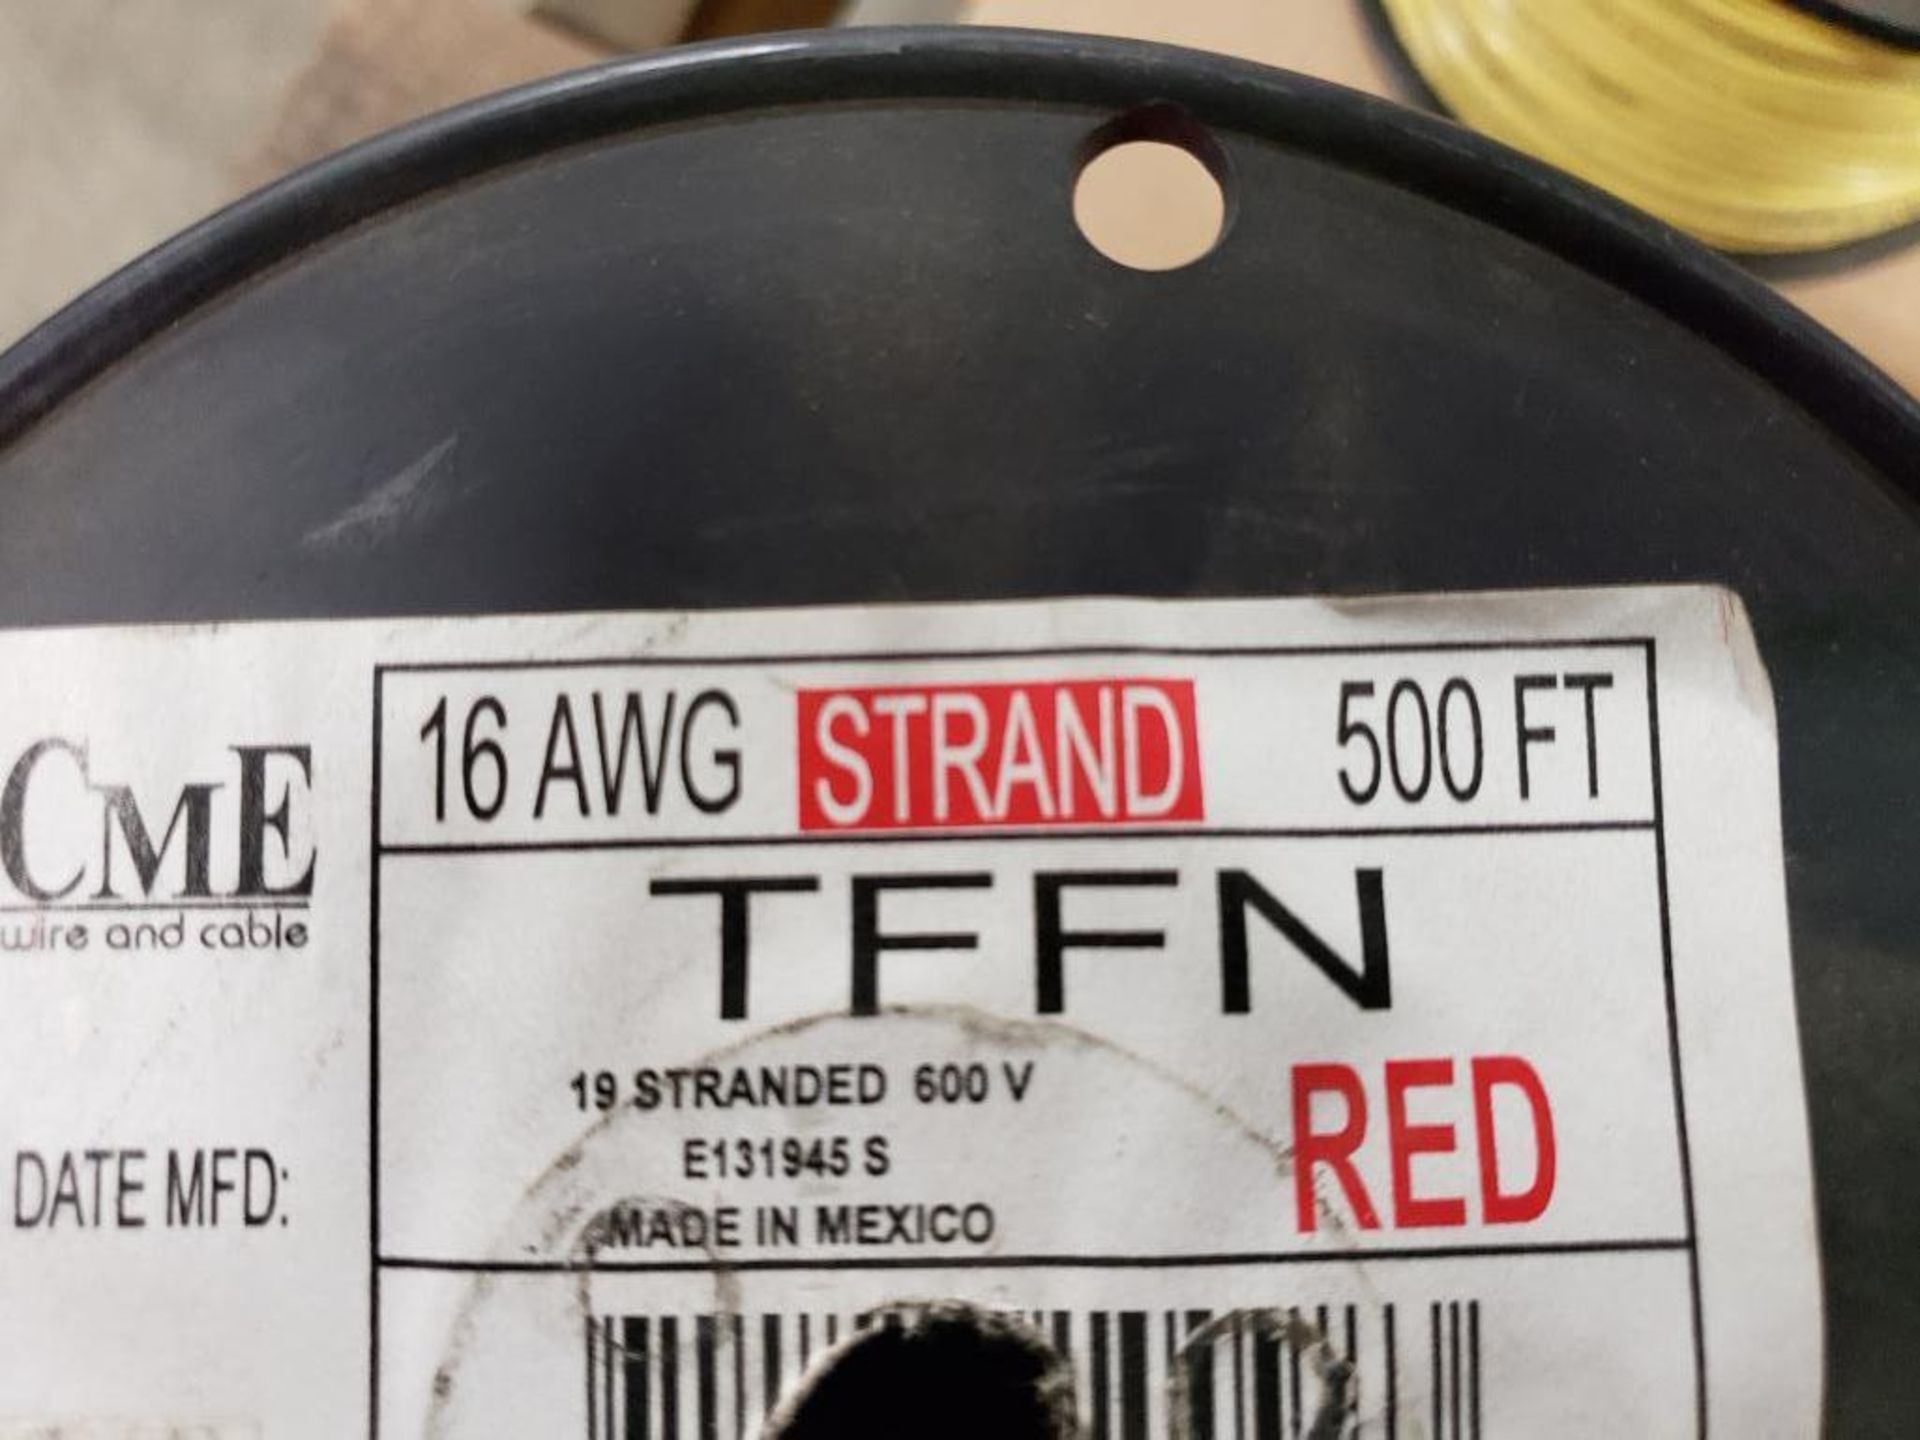 Qty 4 - Spool of CME contractor wire. 16-RED TFFN, 16-WHITE TFFN. - Image 2 of 5